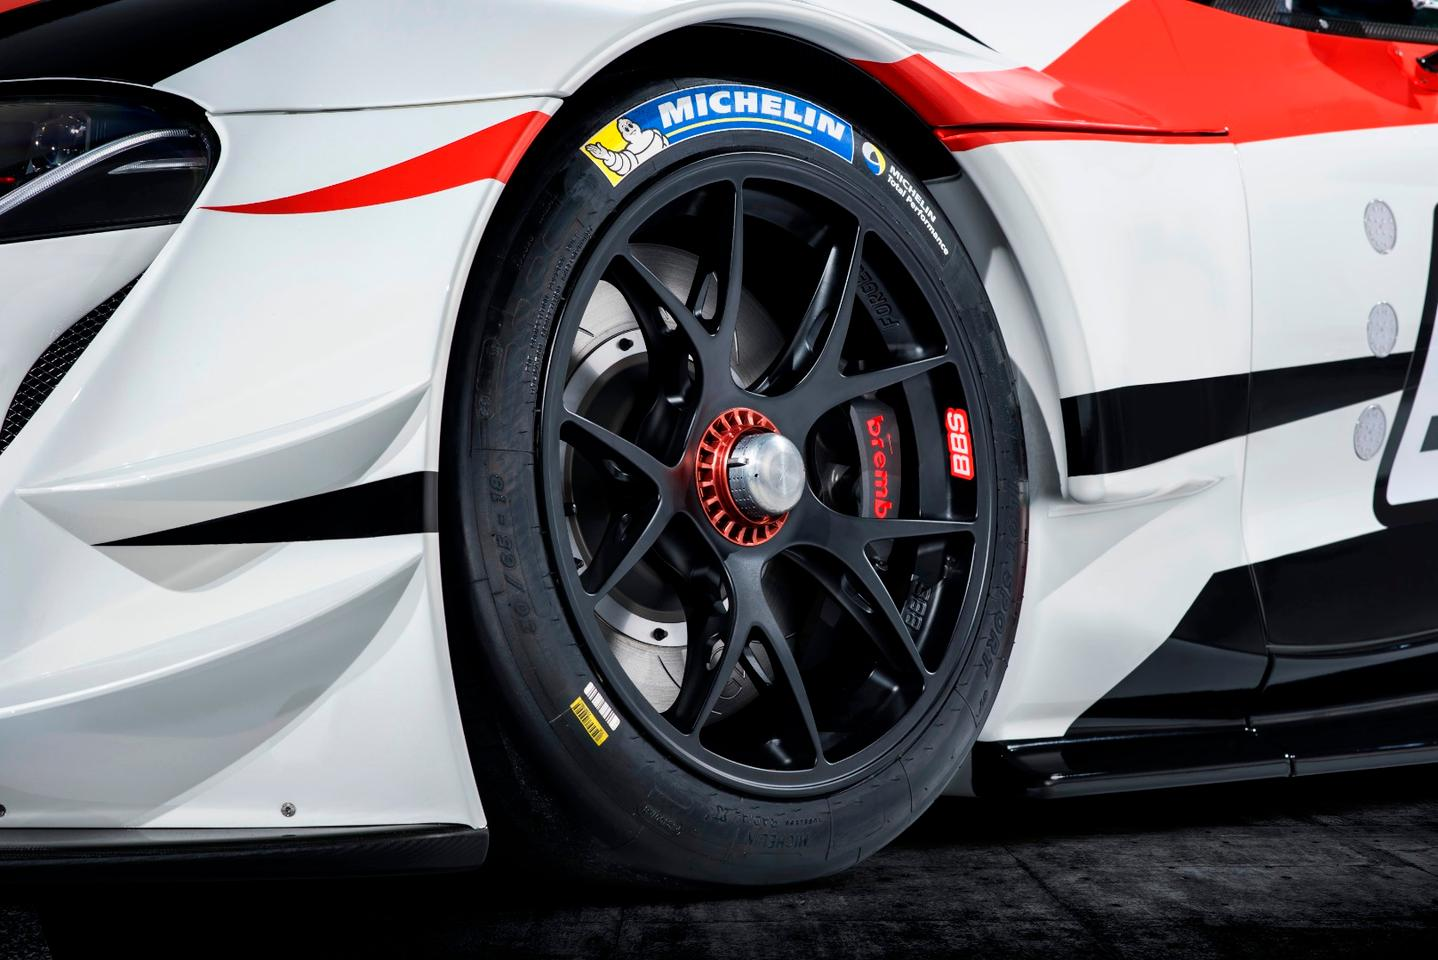 The wheels on the Toyota GR Supra Racing Concept are BBS racing units with center-nut attachments for pit changes